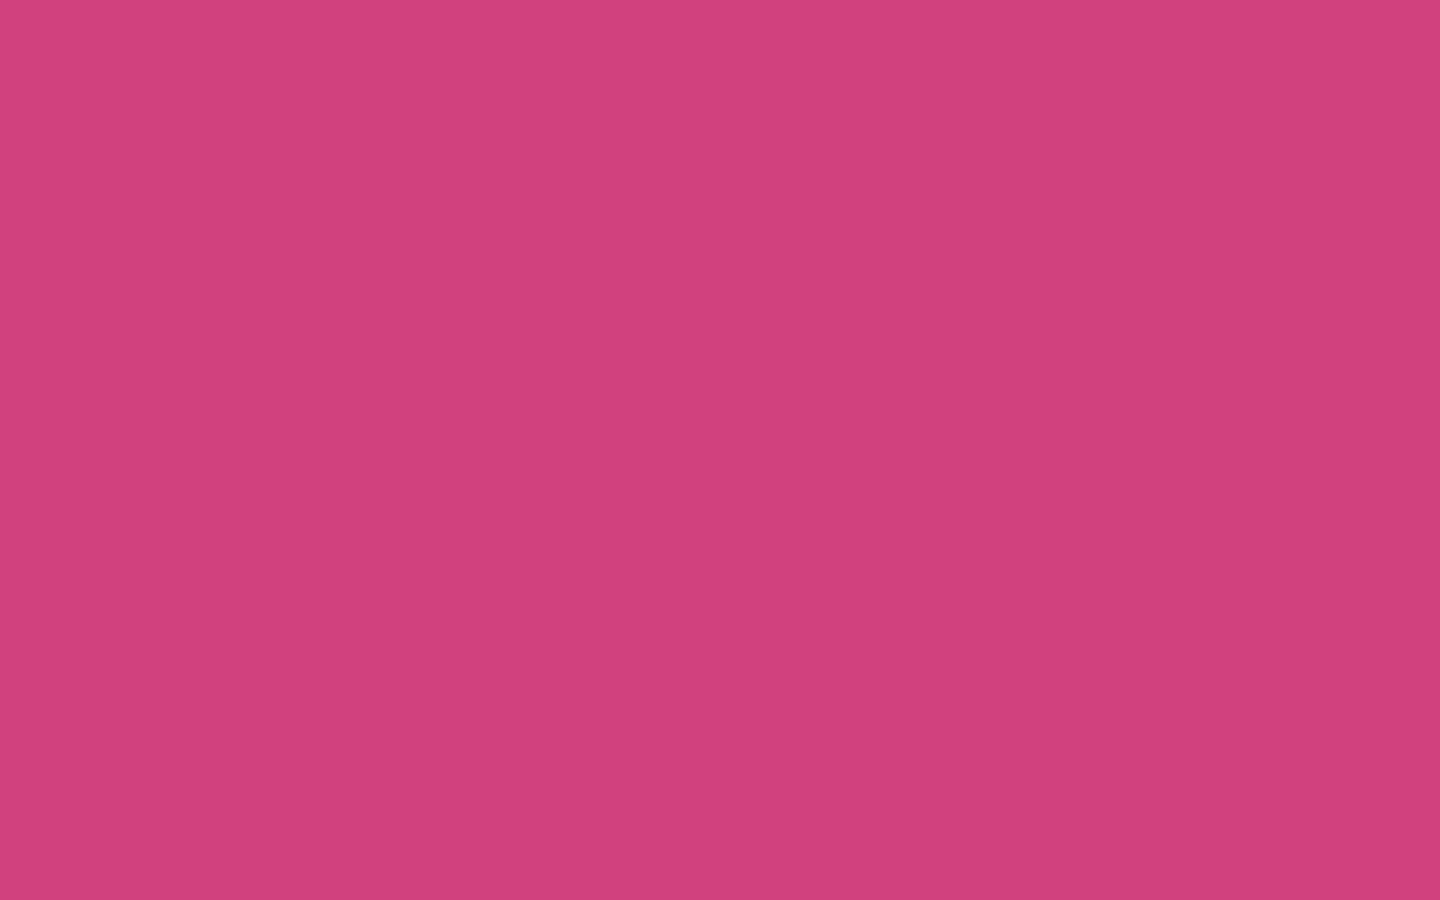 1440x900 Magenta Pantone Solid Color Background